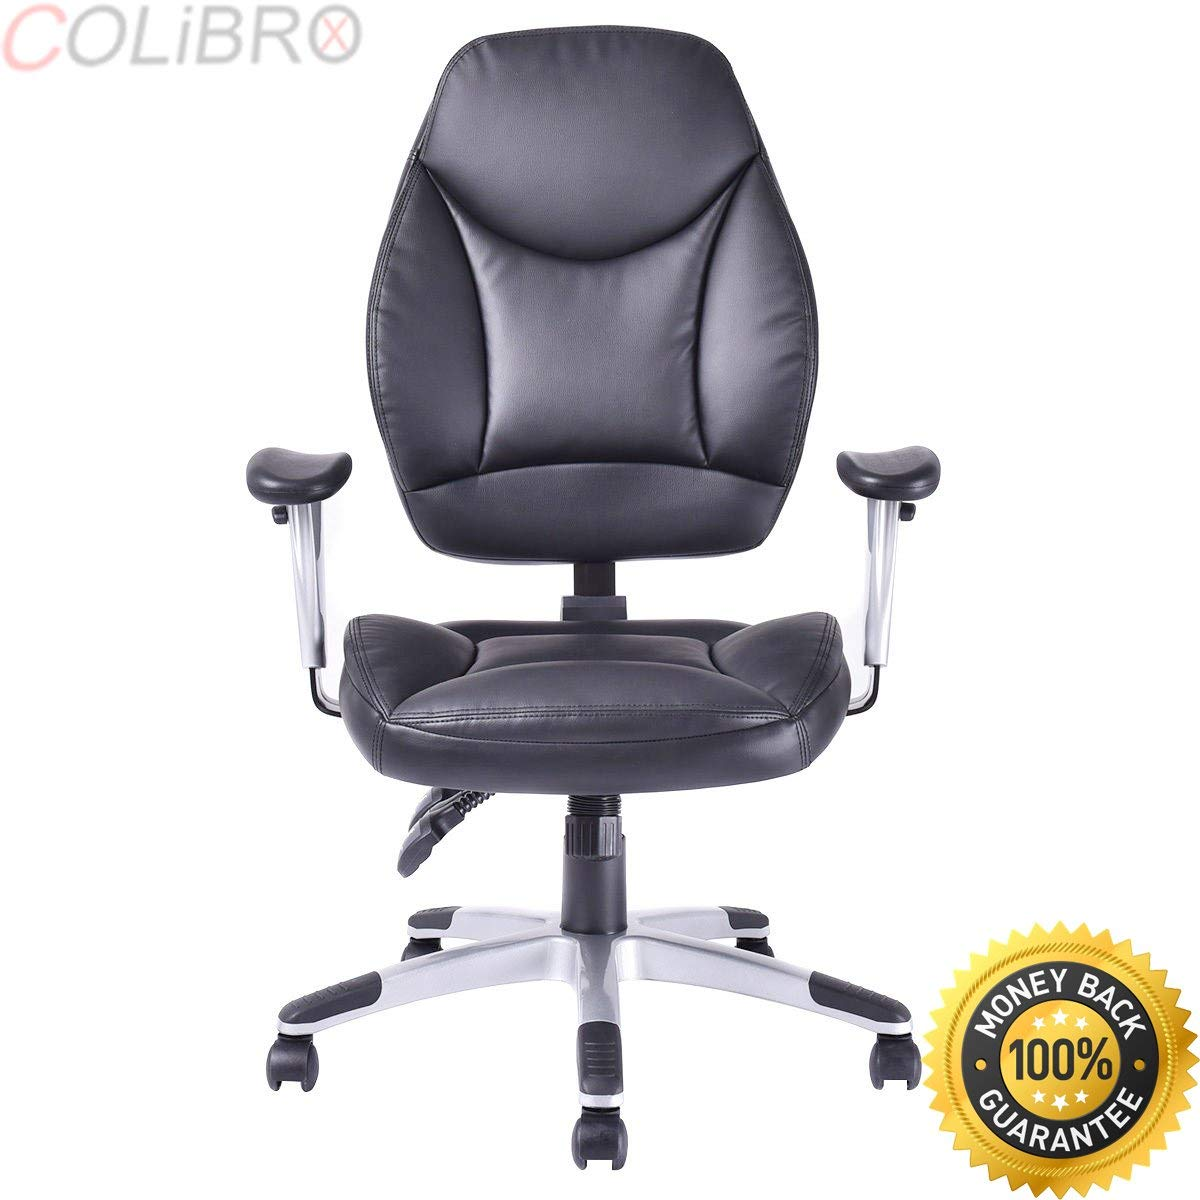 COLIBROX--Modern PU Leather High Back Executive Computer Desk Task Office Chair Black New. bestoffice ergonomic pu leather high back office chair. high back executive chair with headrest.